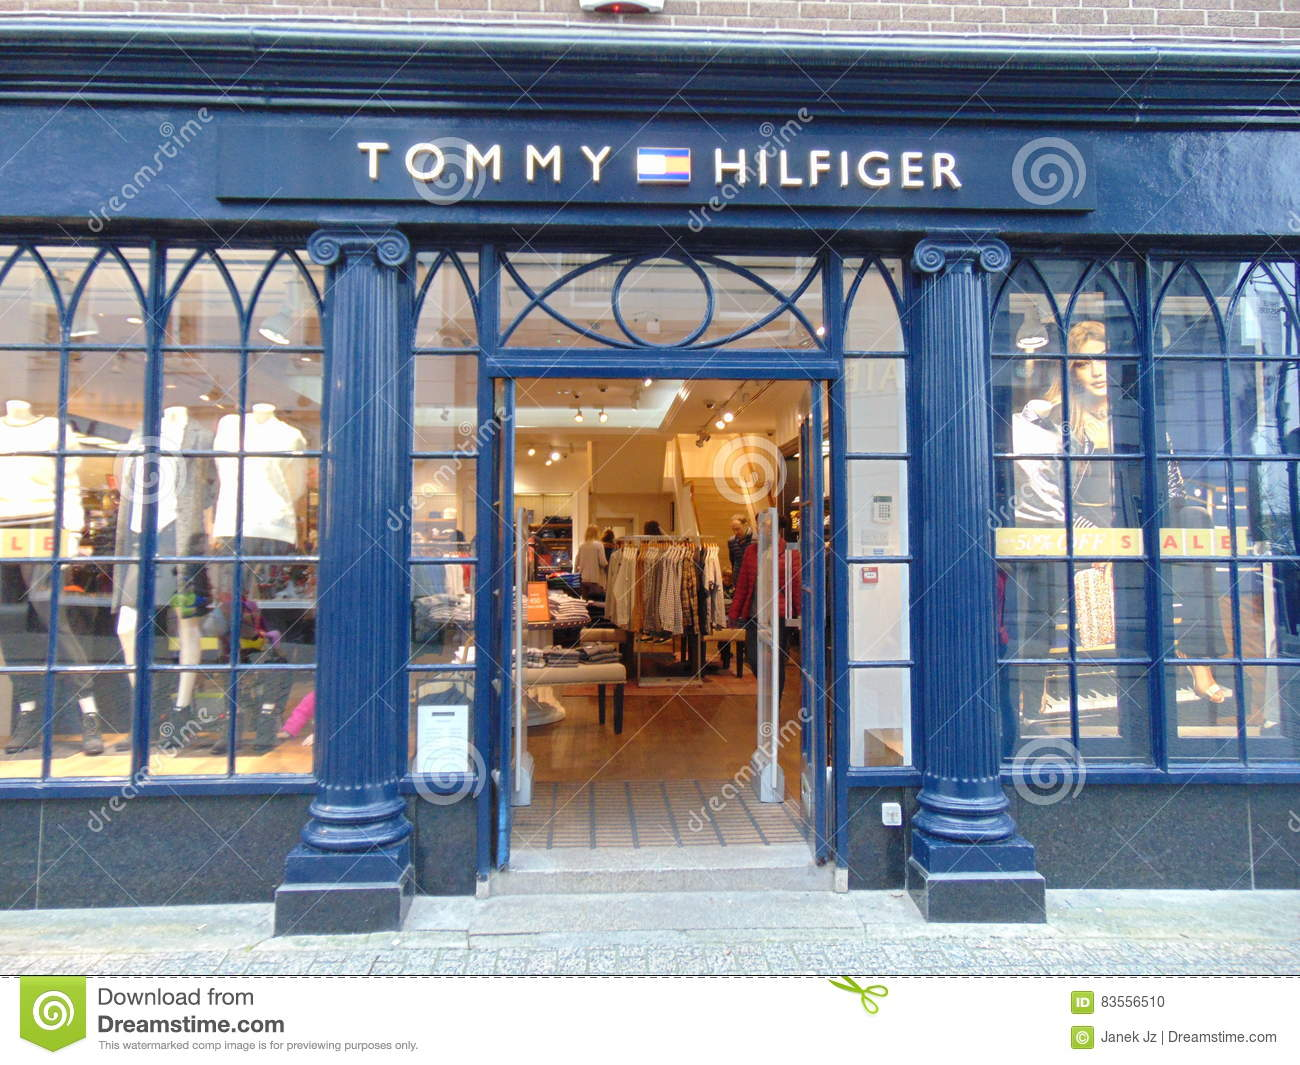 Tommy Hilfiger Shop Front in Waterford